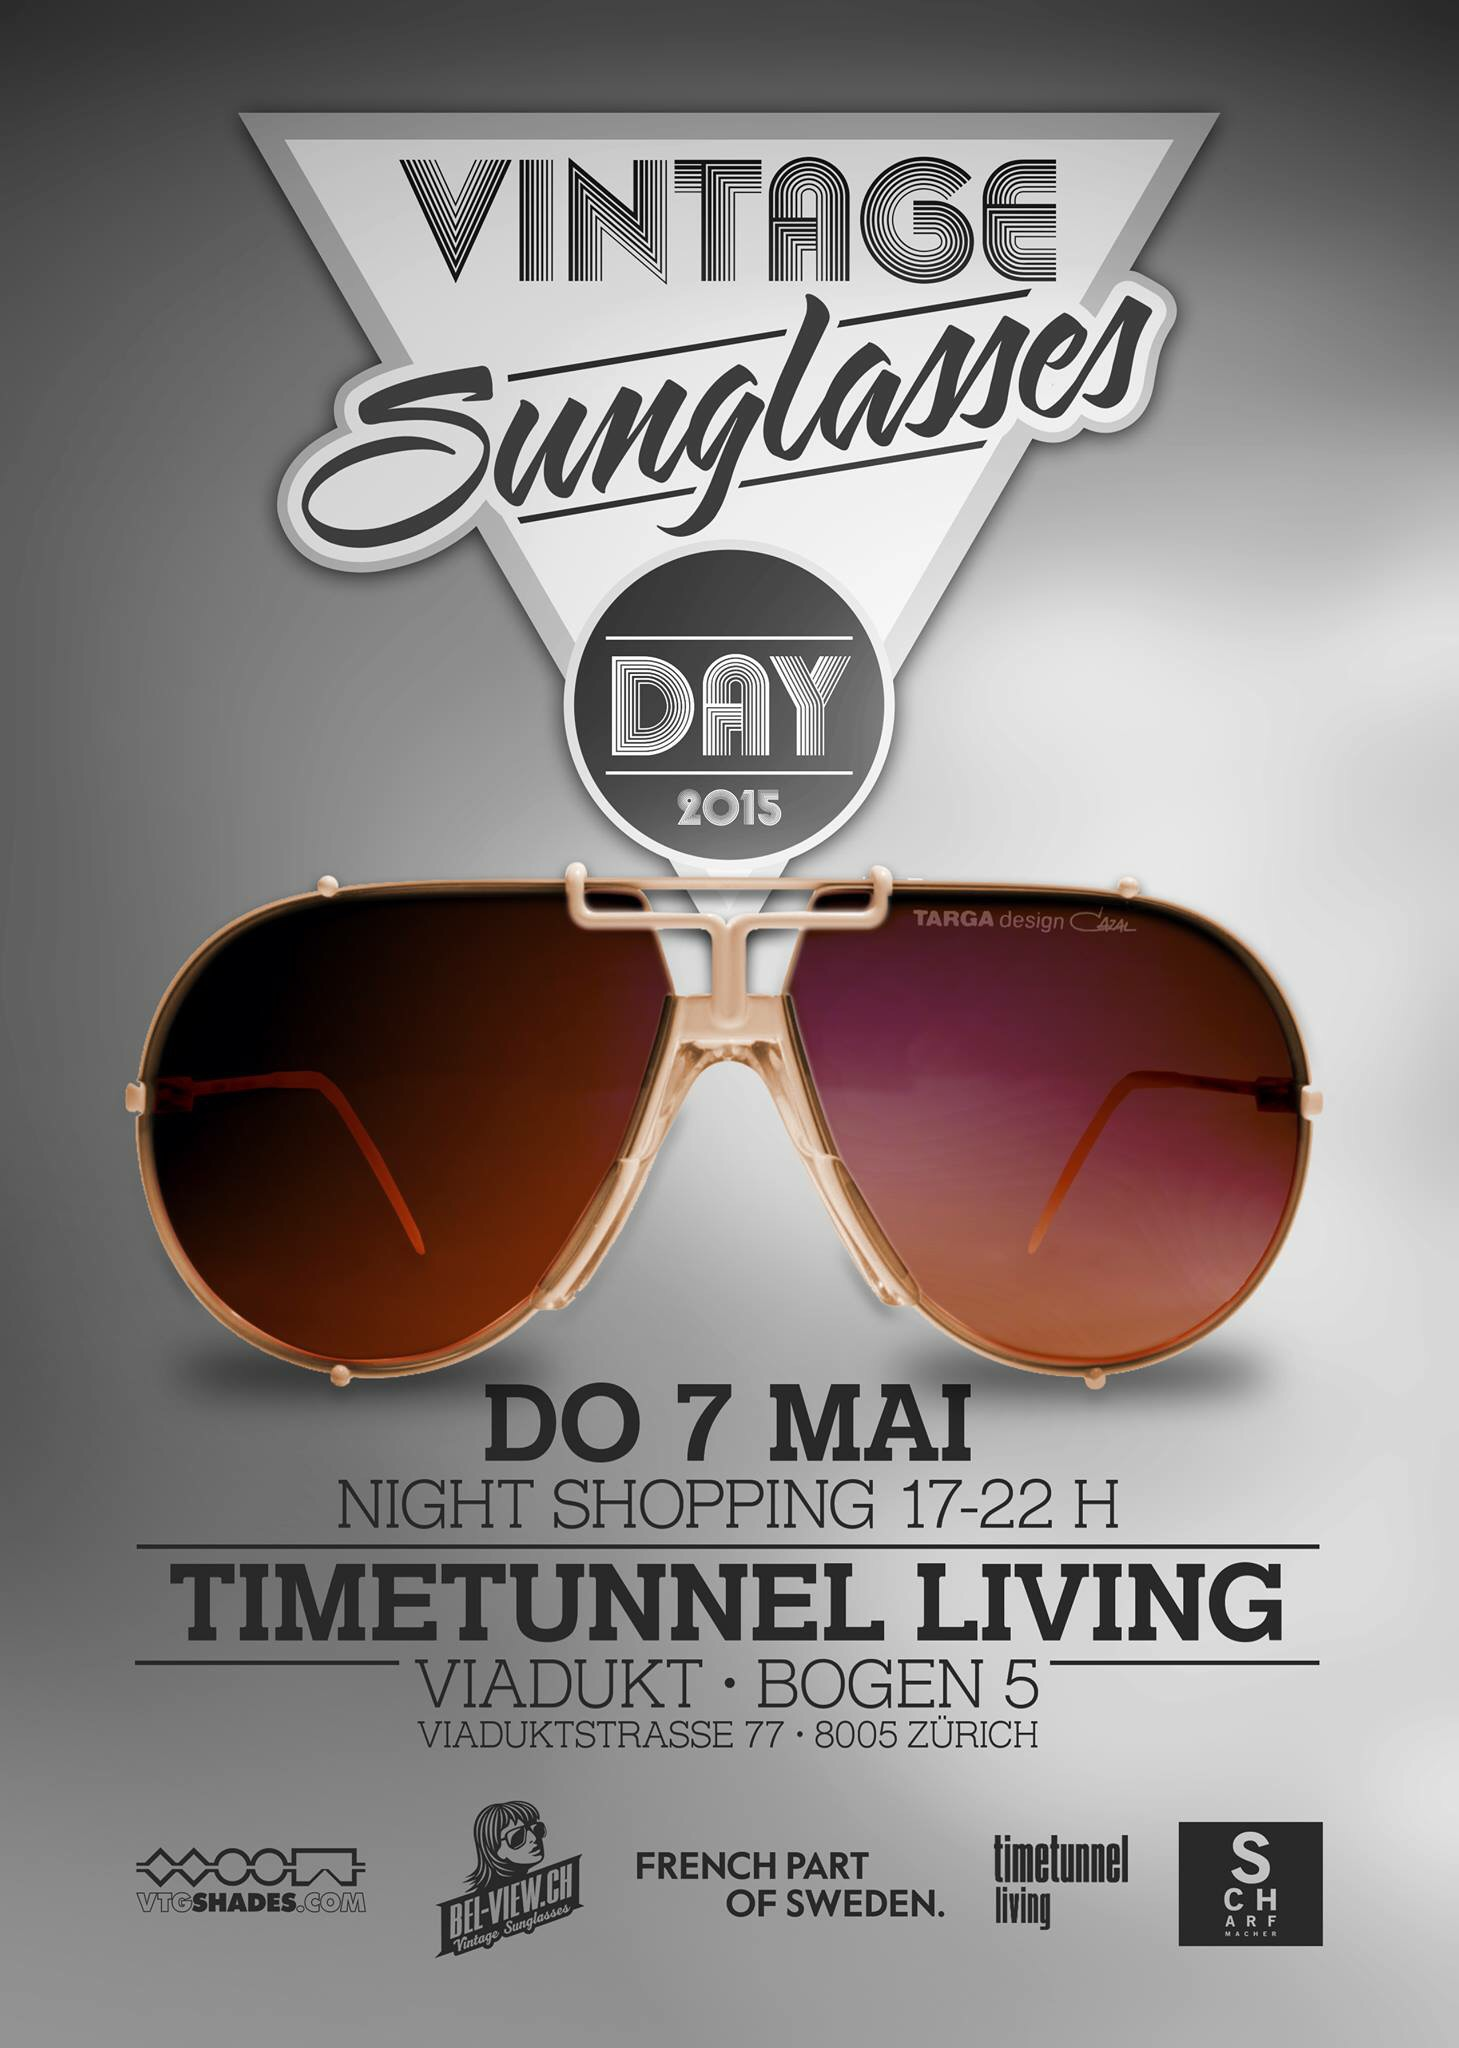 bab5eb273e5b Vintage Sunglasses Day 2015